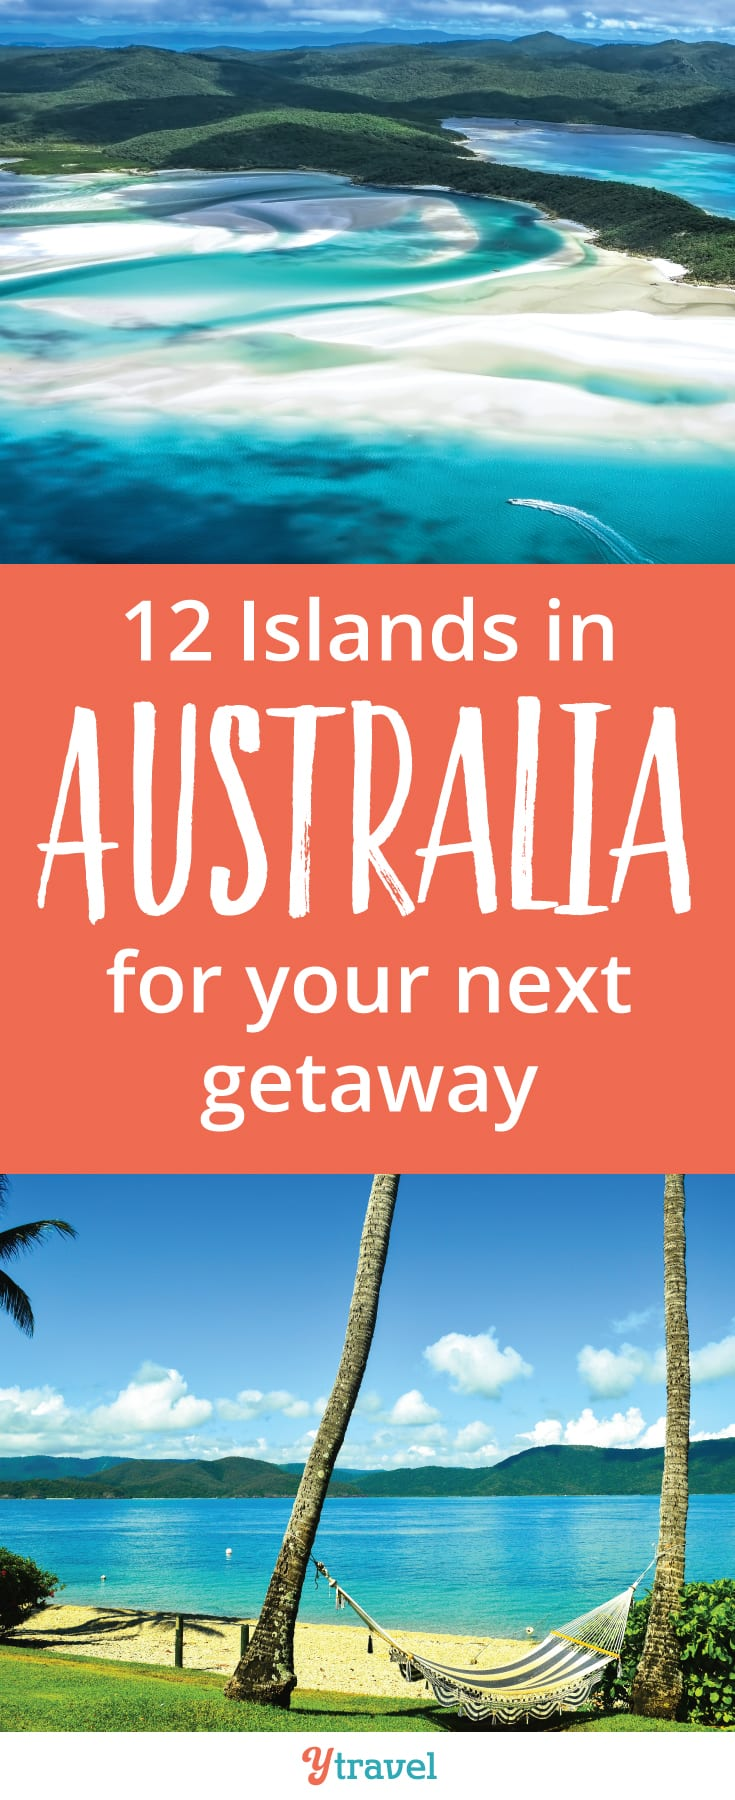 12 amazing islands in Austalia for your next getaway.